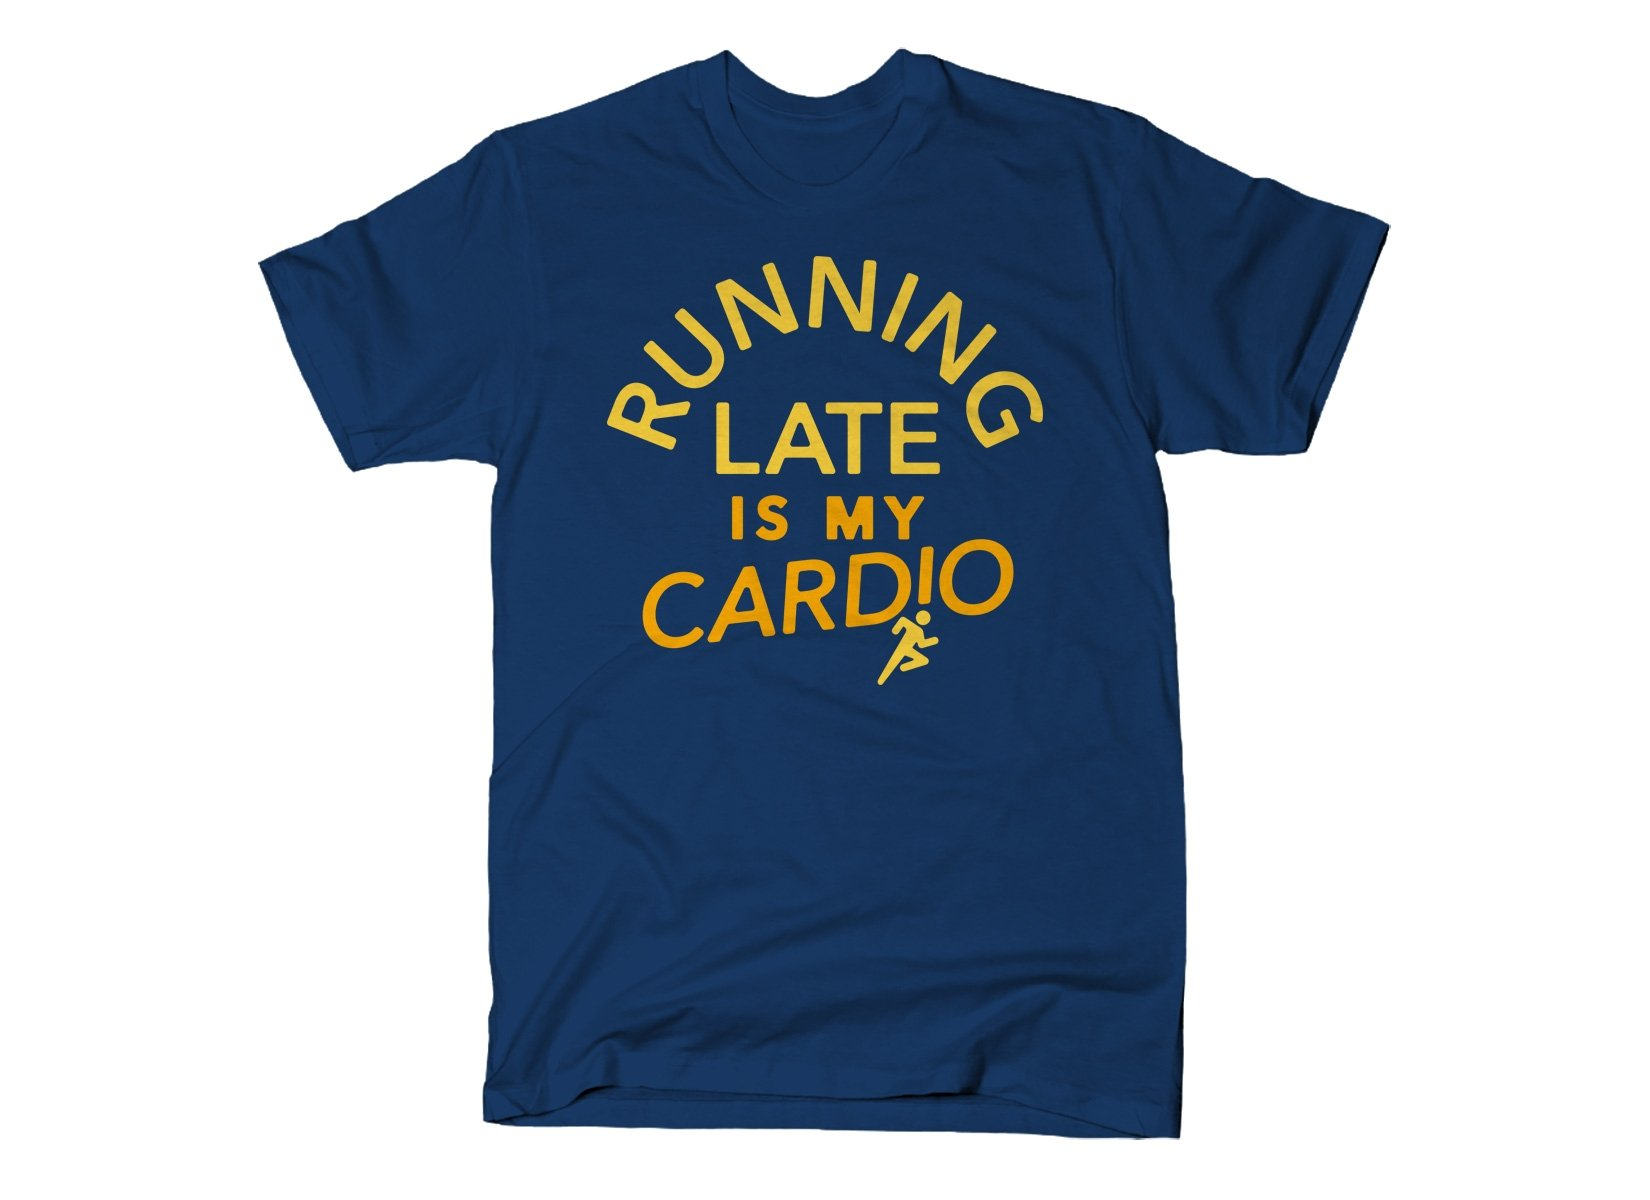 Running Late Is My Cardio on Mens T-Shirt